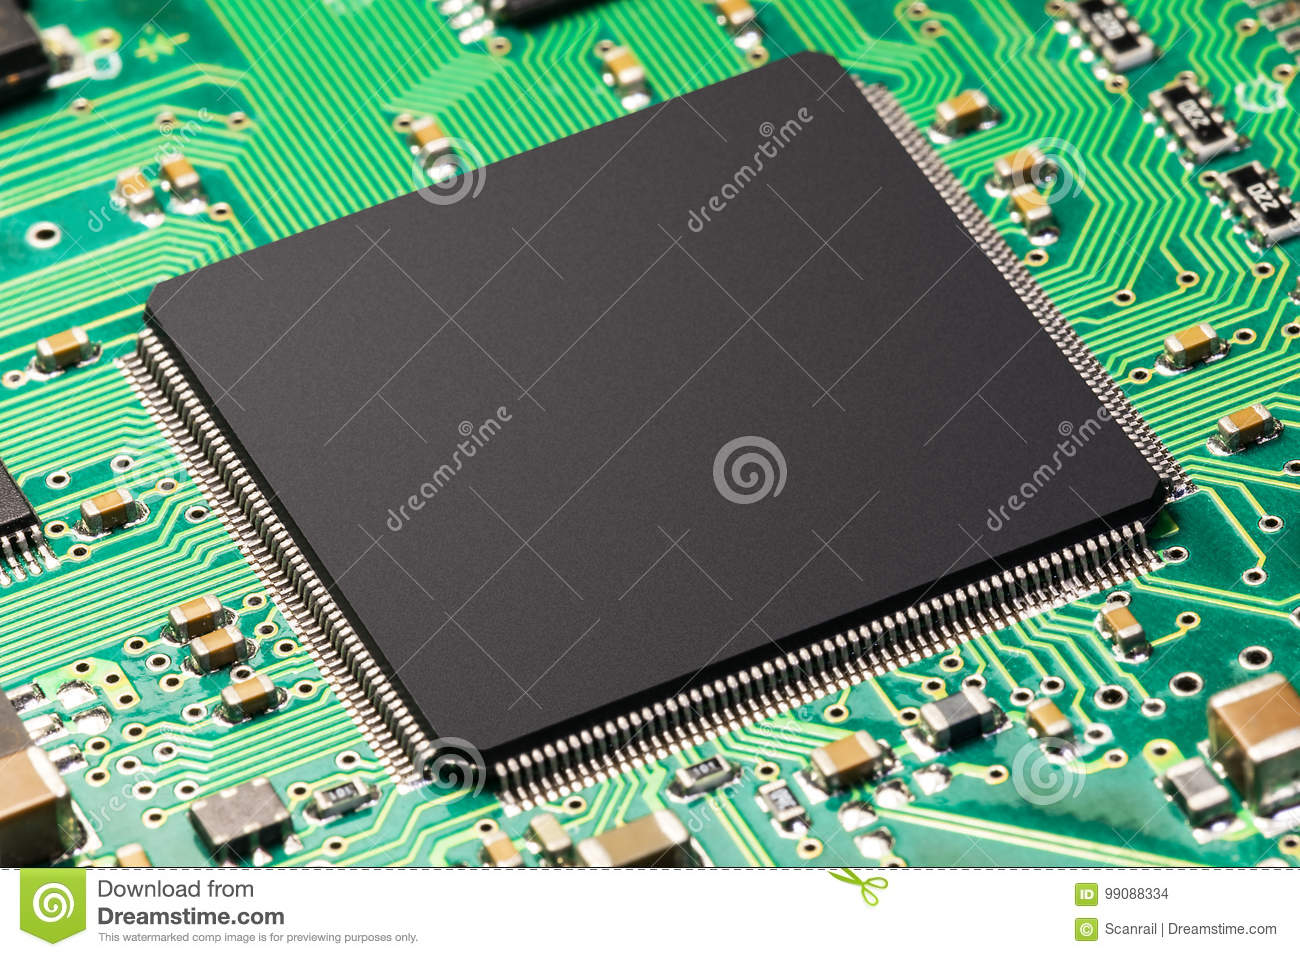 Microchip On The Circuit Board Stock Photo Image Of Macro Photos Pcb Circuits Computers Components Technology Creative Abstract Electronic And Computer Pc Hardware Business Concept View Cpu Or Chip Green Printed